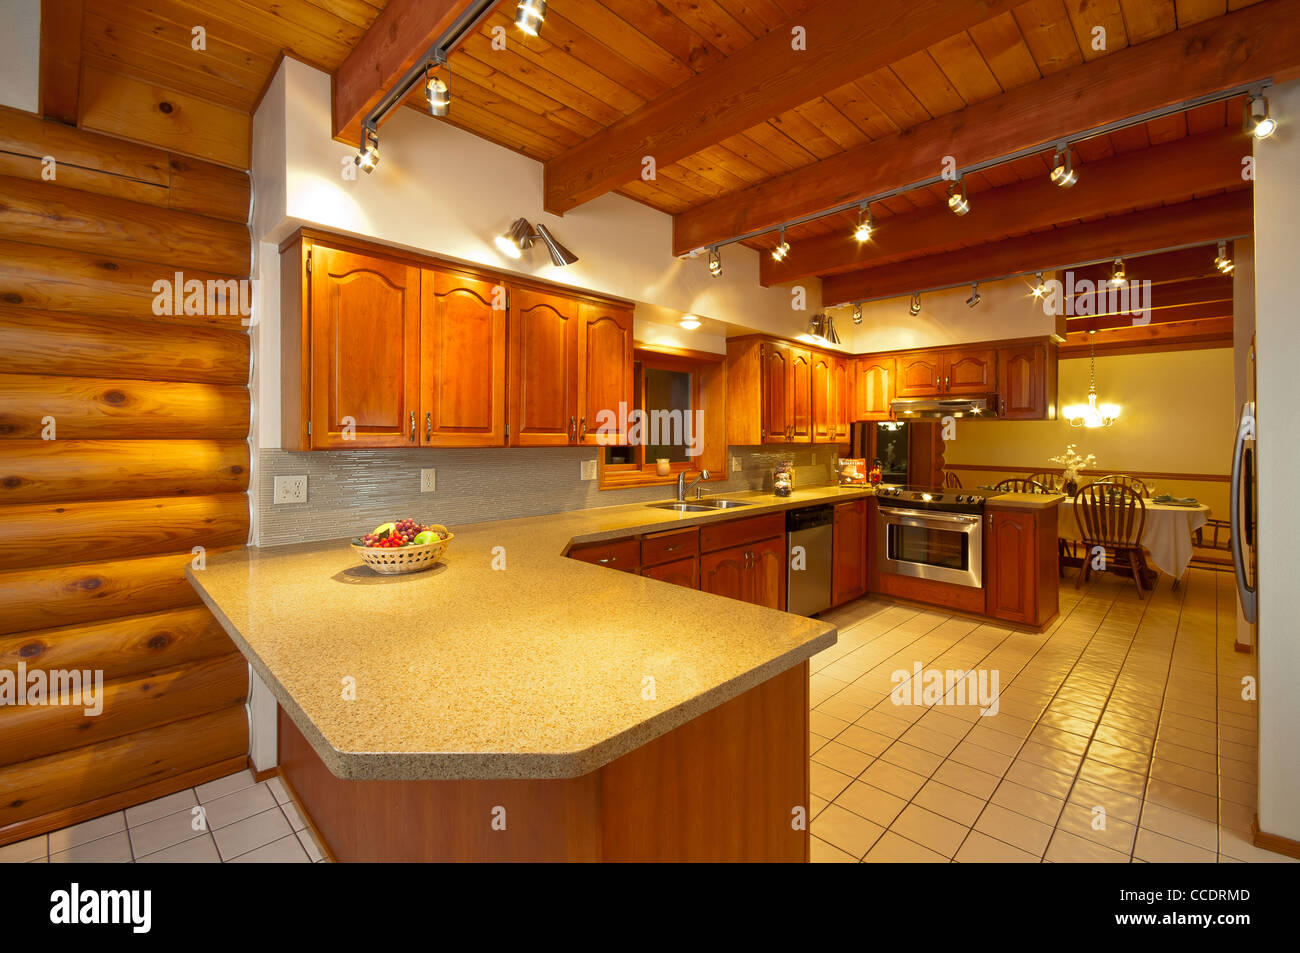 Large Wooden Log House In Stockfotos & Large Wooden Log House In ...